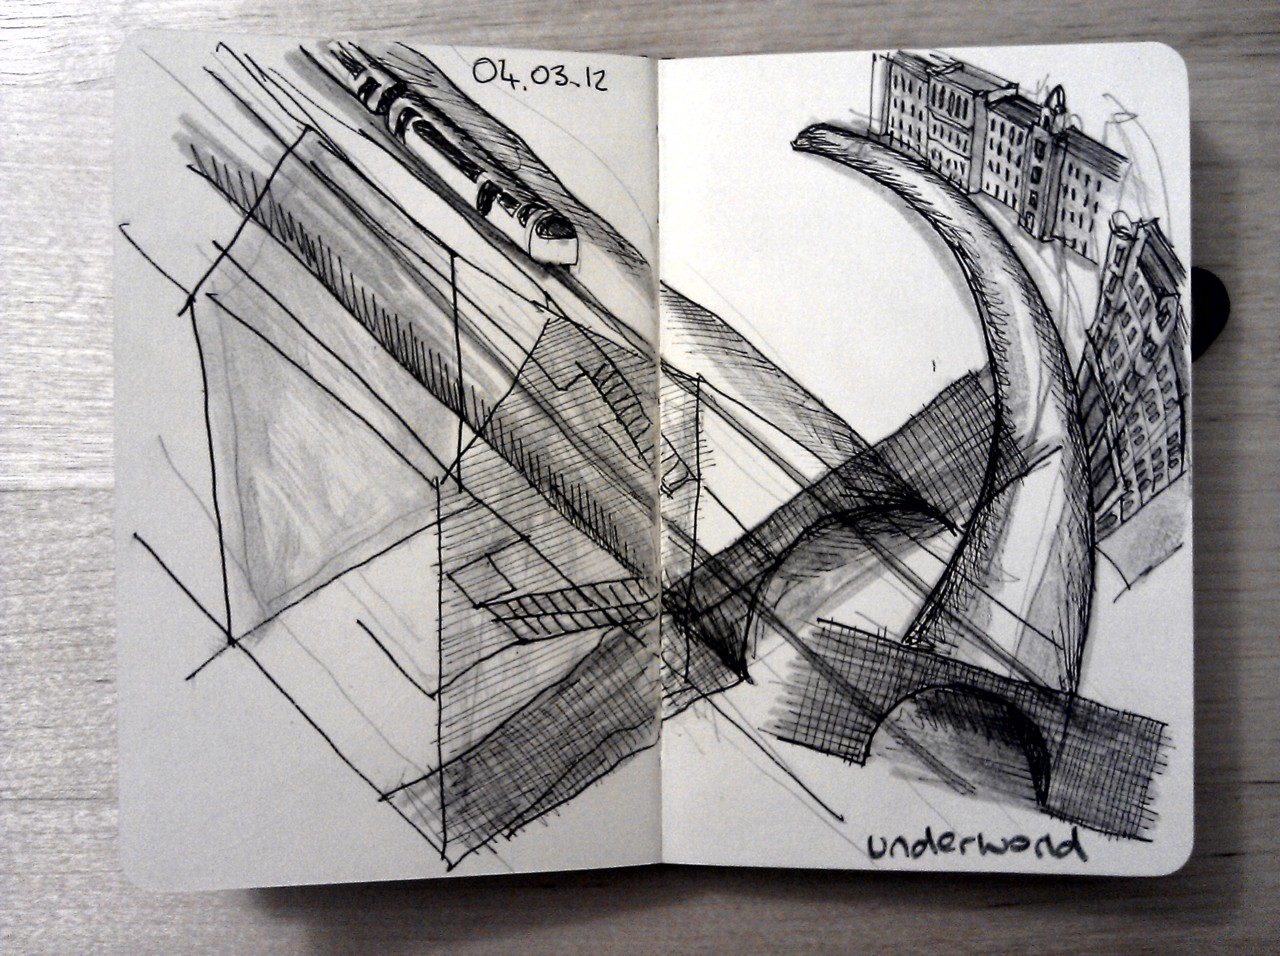 365 drawings later … day 33 … underworld (following an interesting chat about the underground tunnels in the merchant city, wish I had time for more detail)